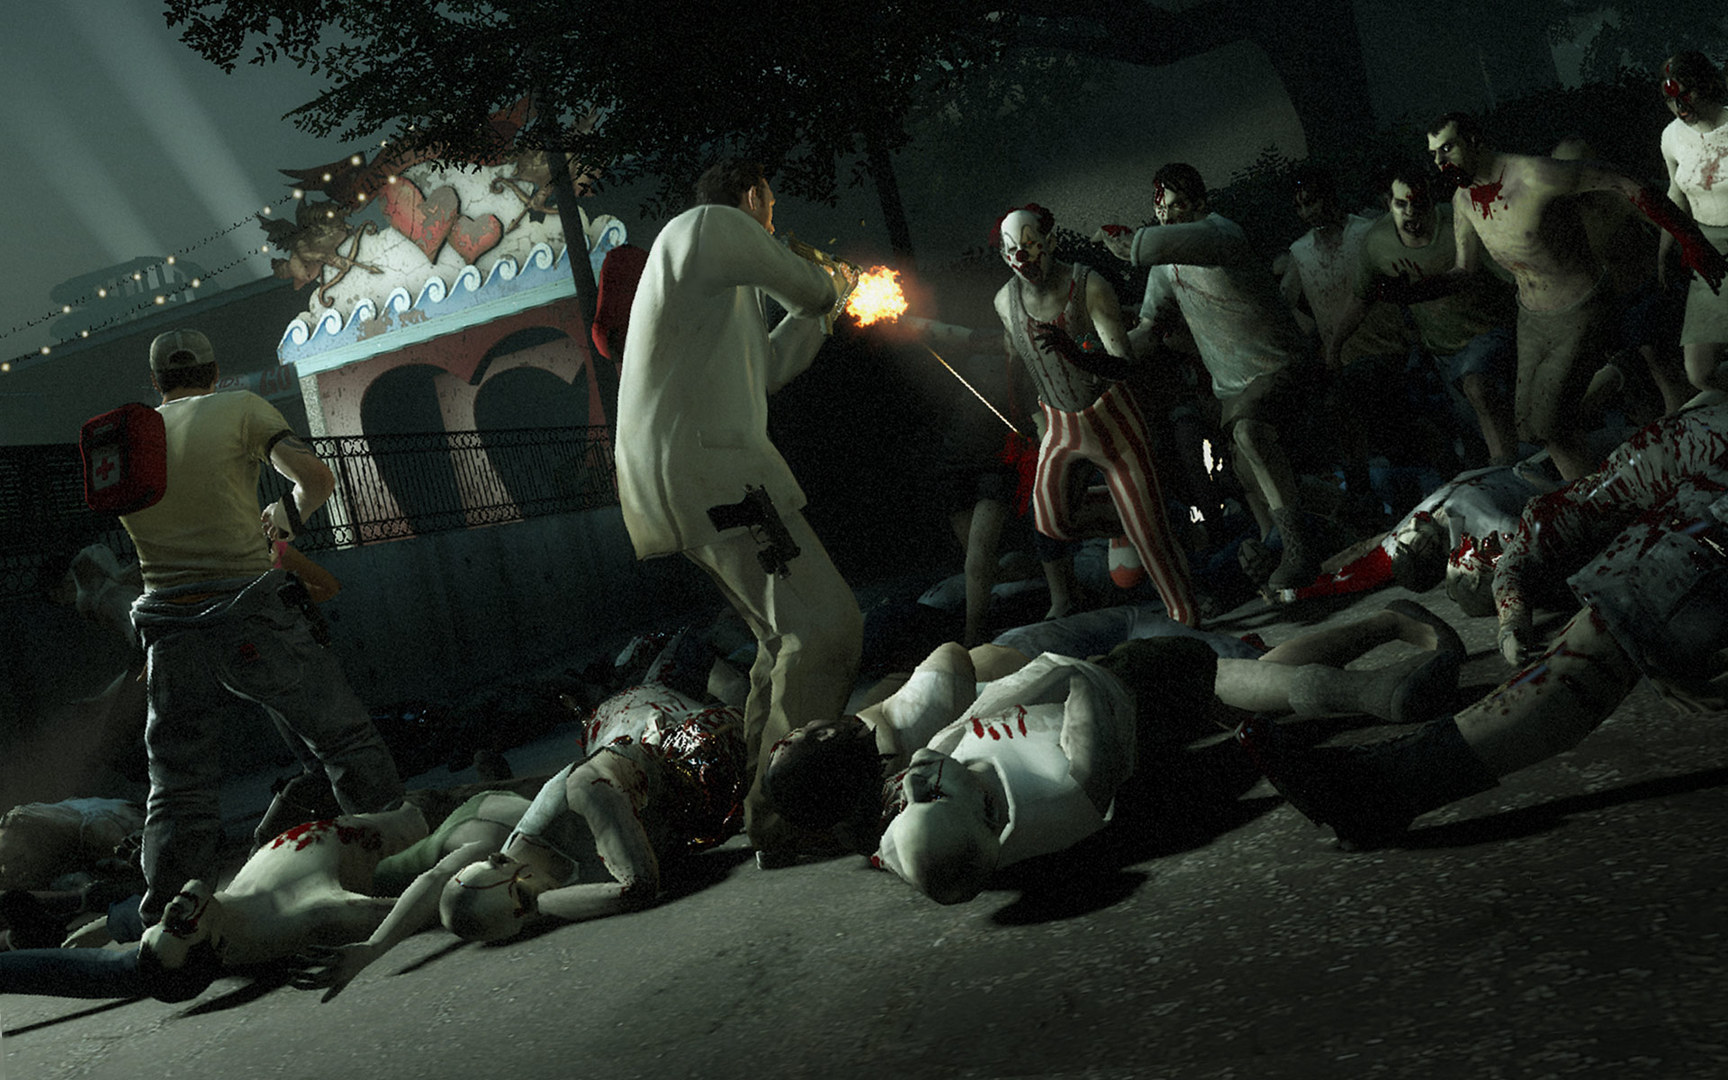 Video Game - Left 4 Dead 2  - Dead - Zombie - Attac - Fire - Night - Dark - Clown - Carneval - Left 4 Dead Wallpaper